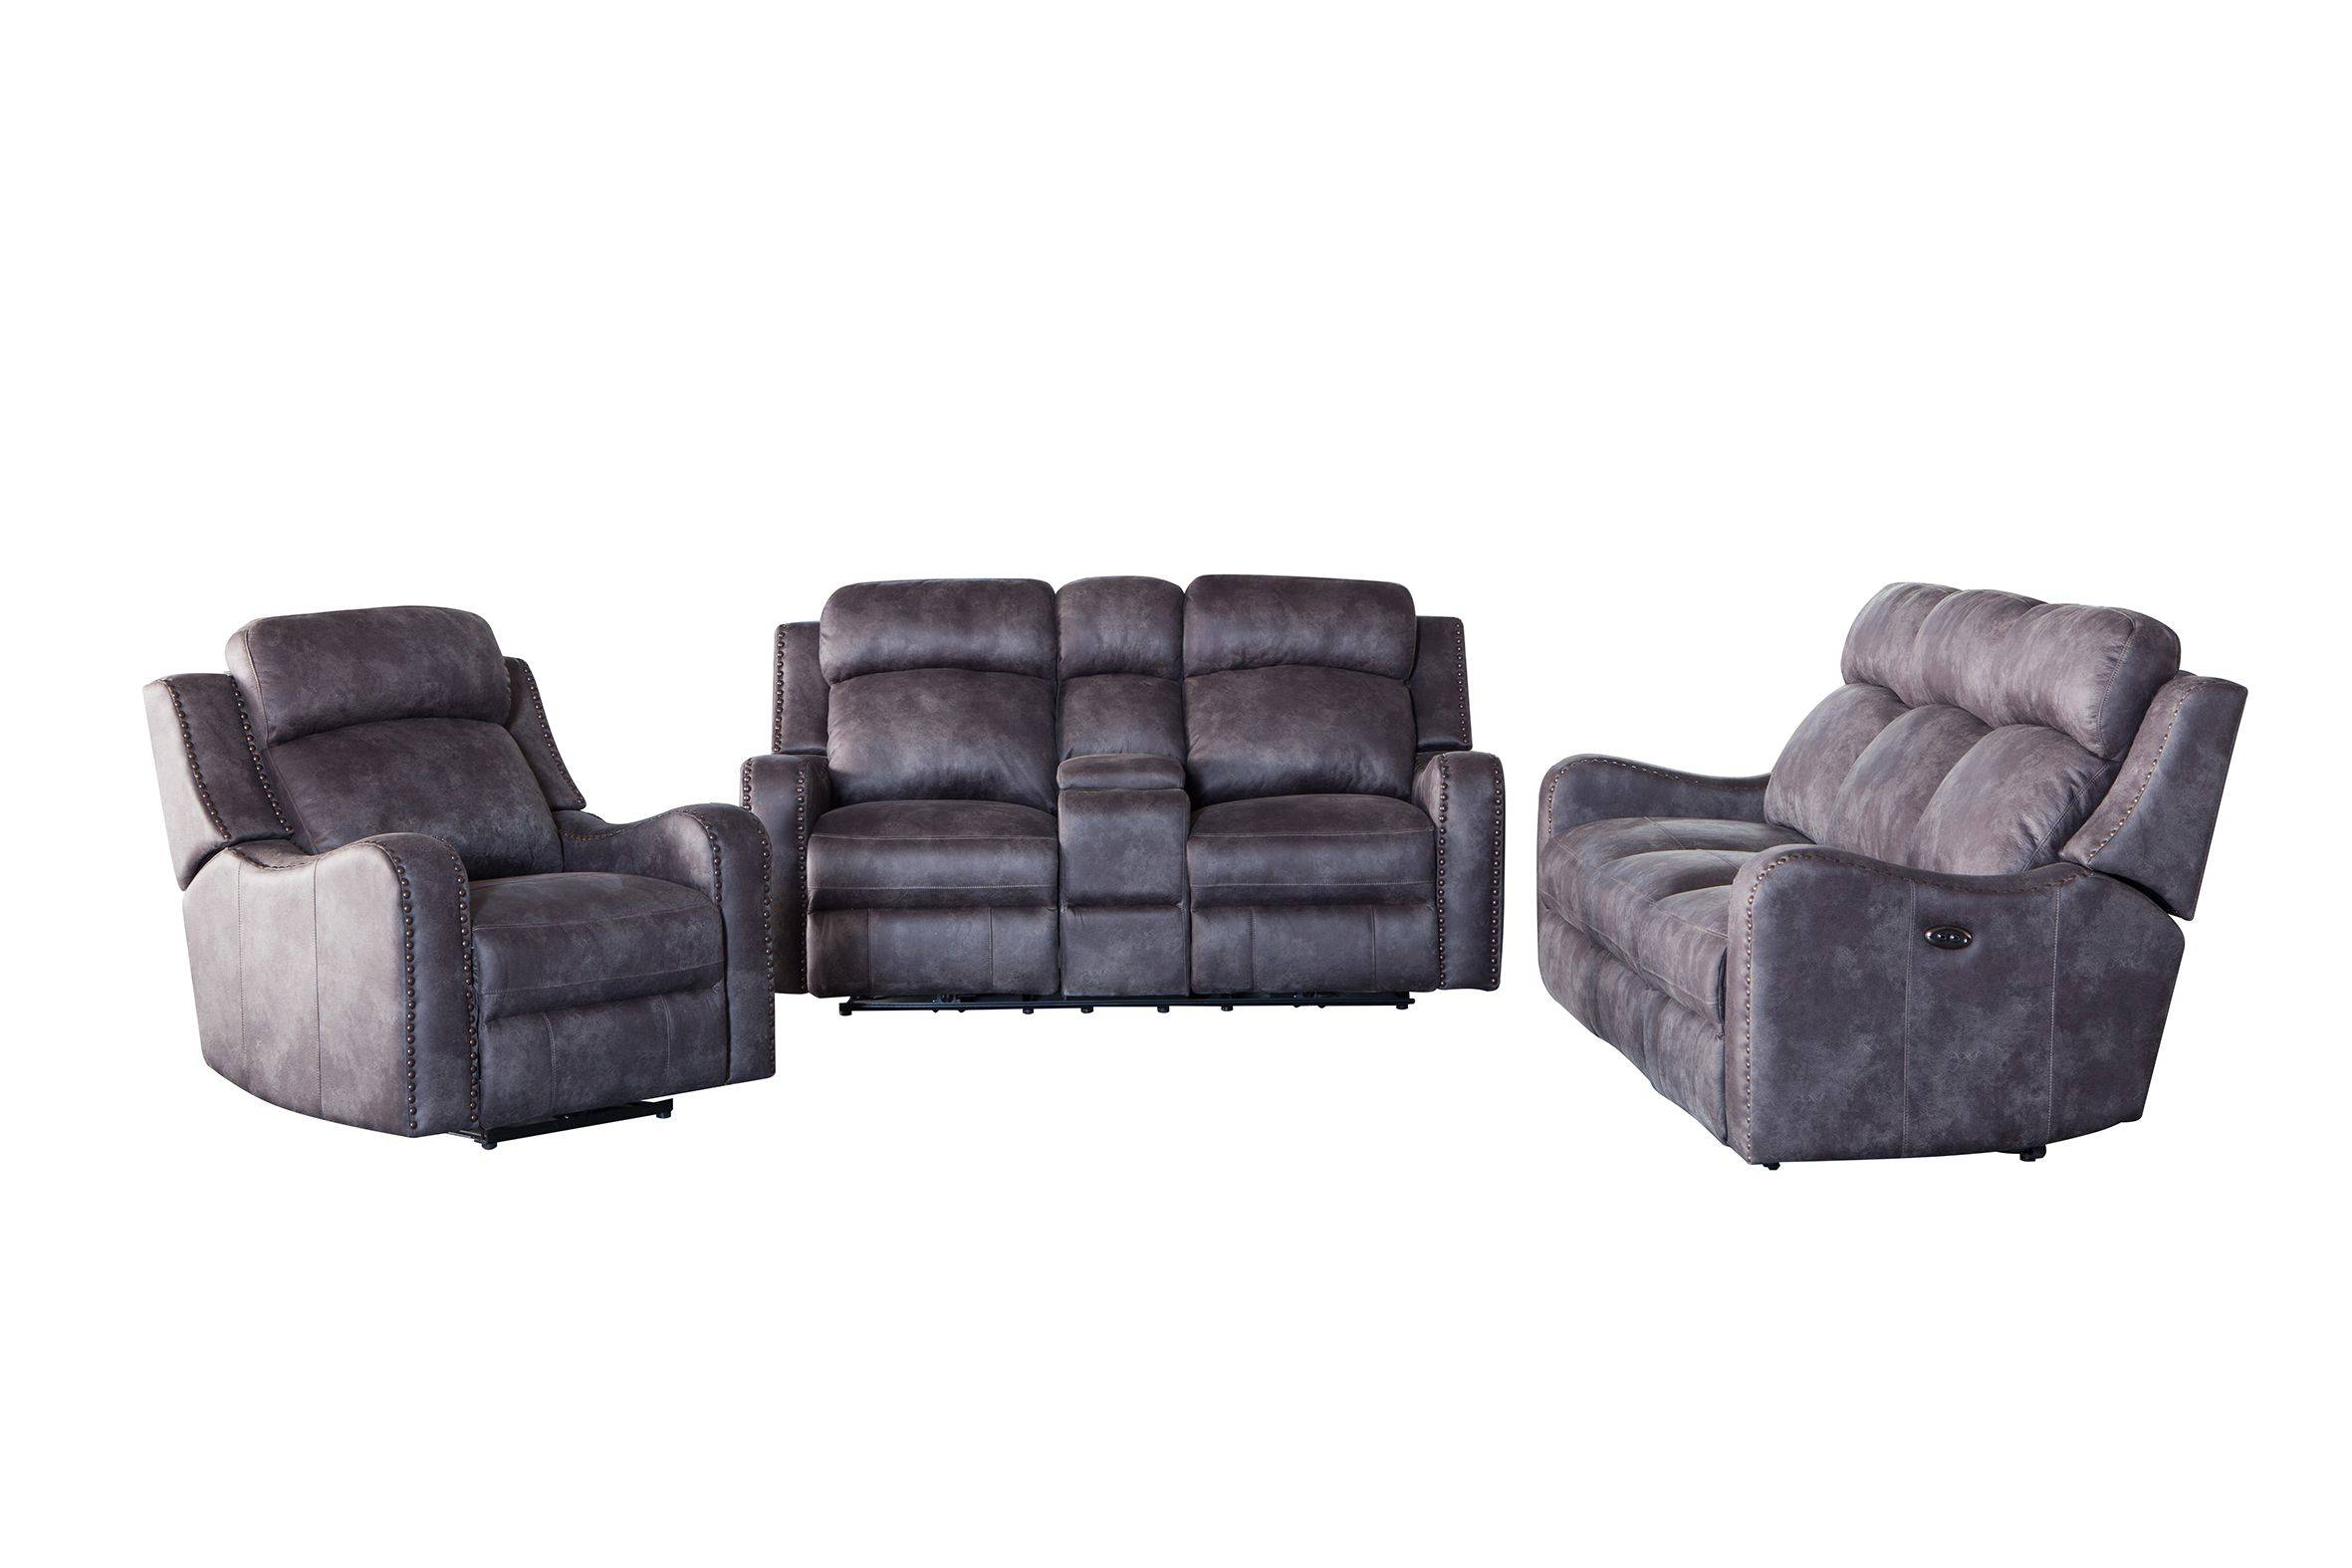 Home theater good quality modern corner 3 2 1 sofa with favorable price